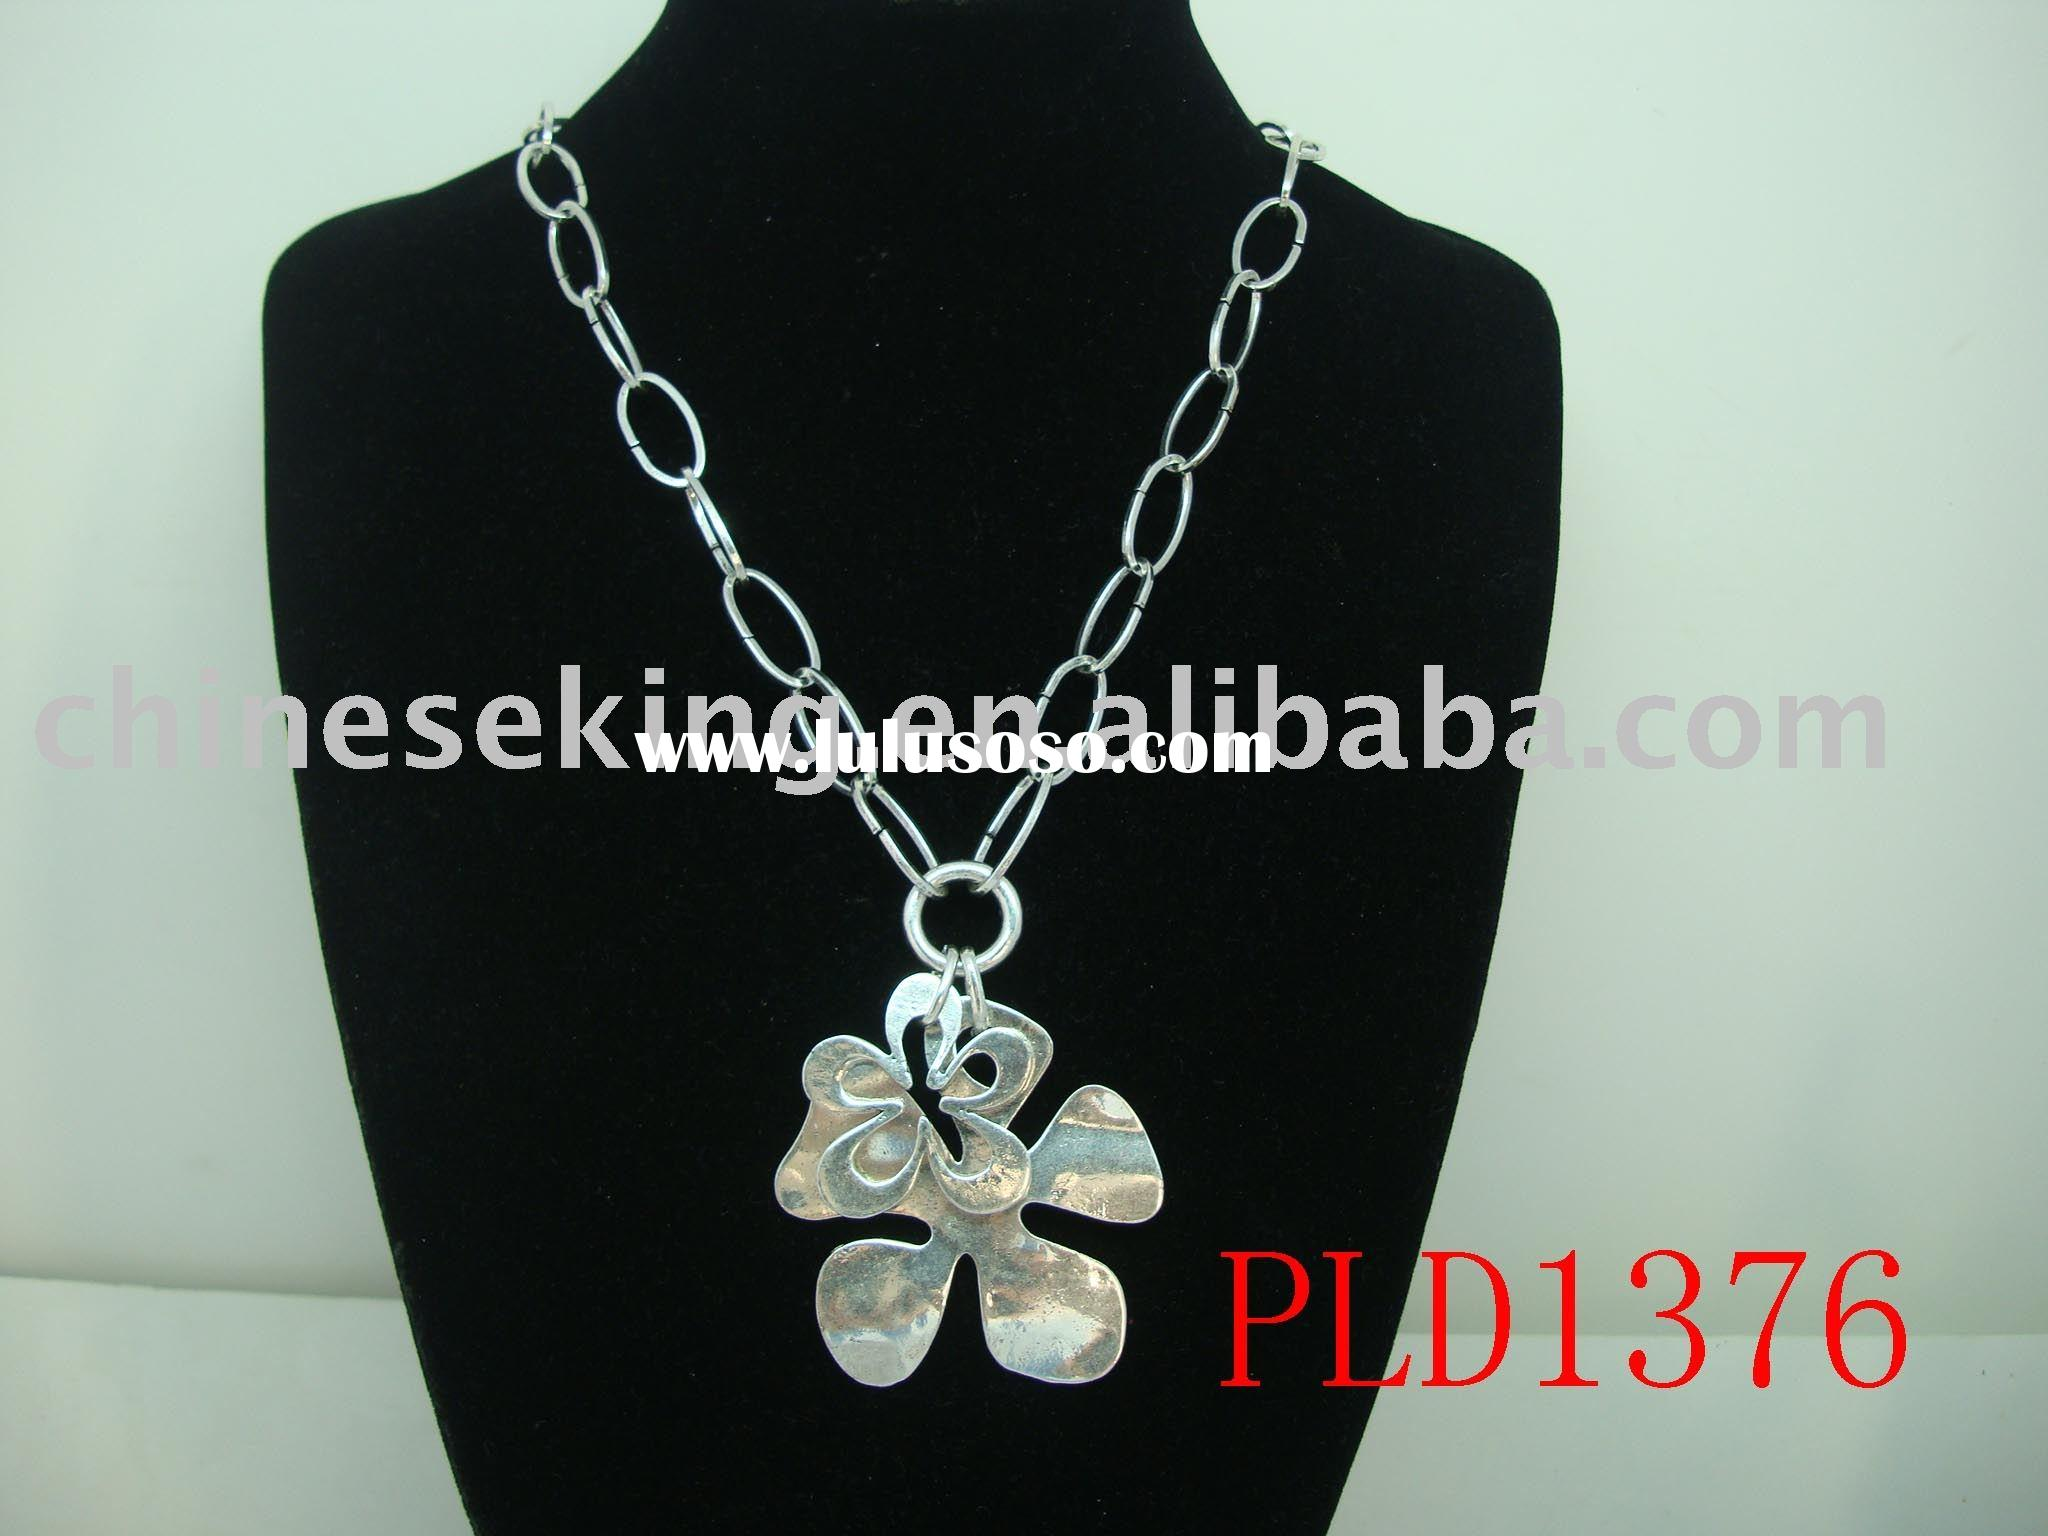 fashion metal necklace, alloy accessories for woman